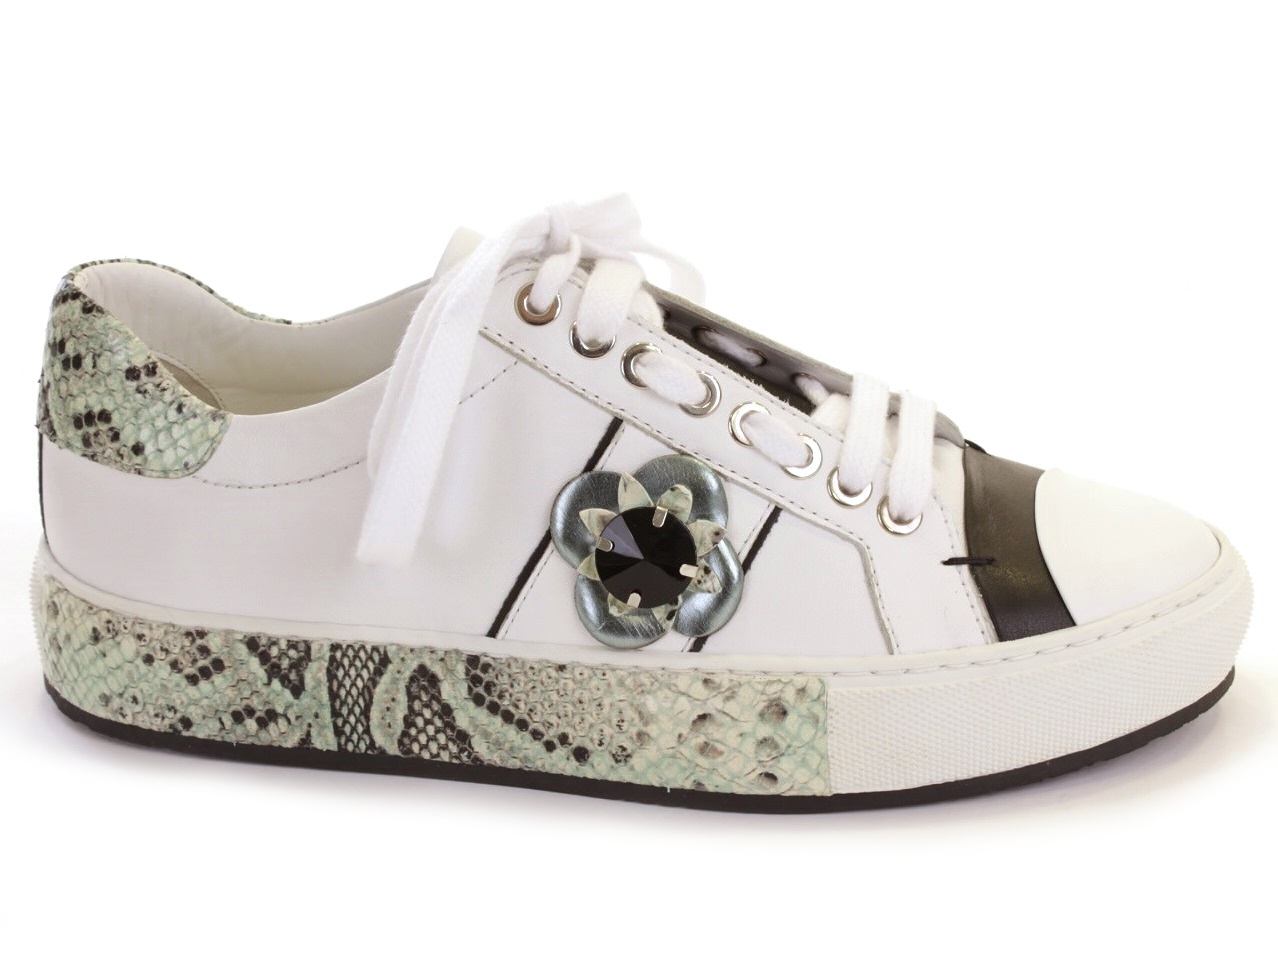 Sneakers and Espadrilles Helsar - 032 10557